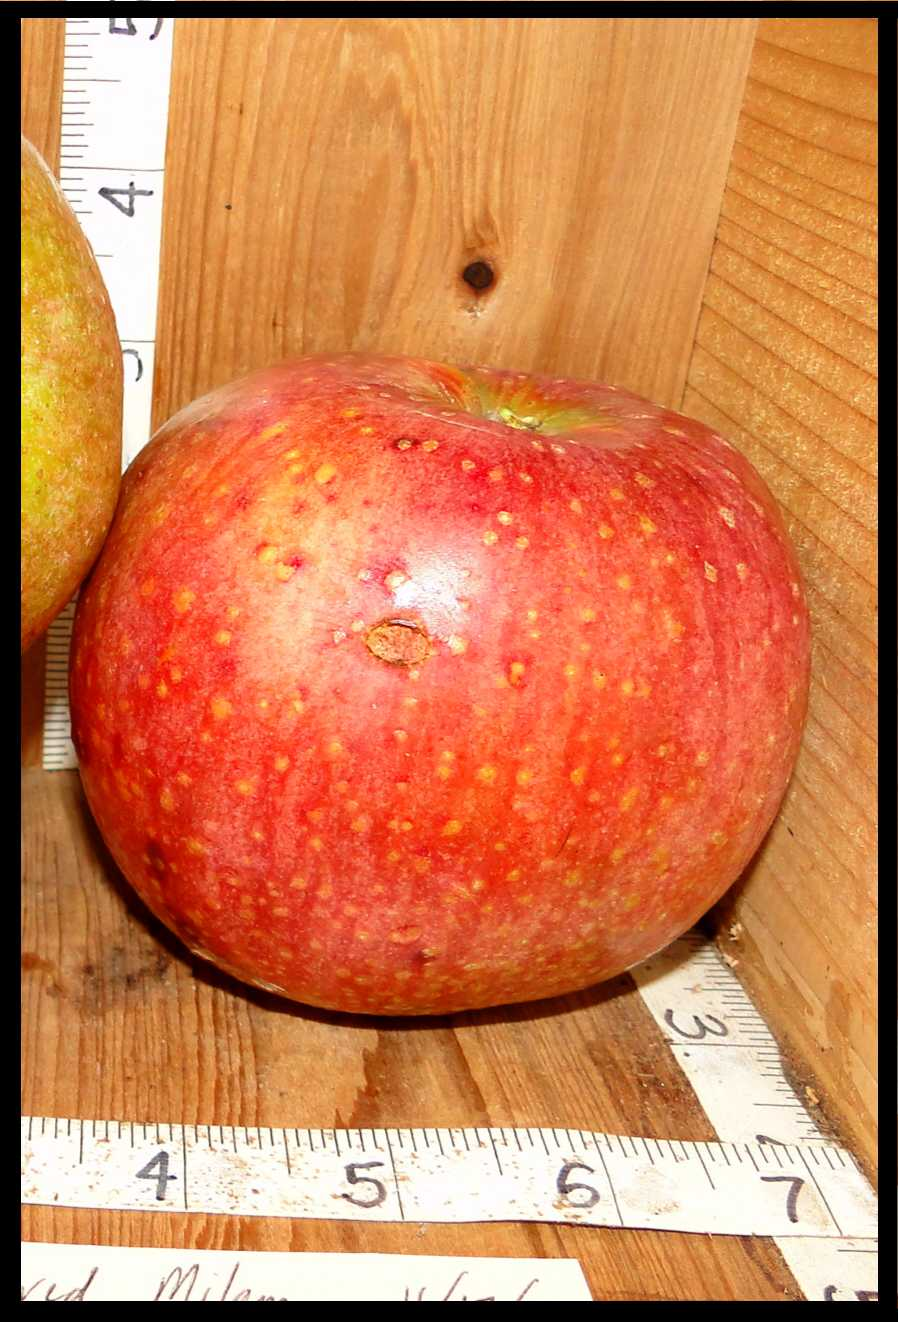 shiny red apple with a yellow undertone and medium yellow spots